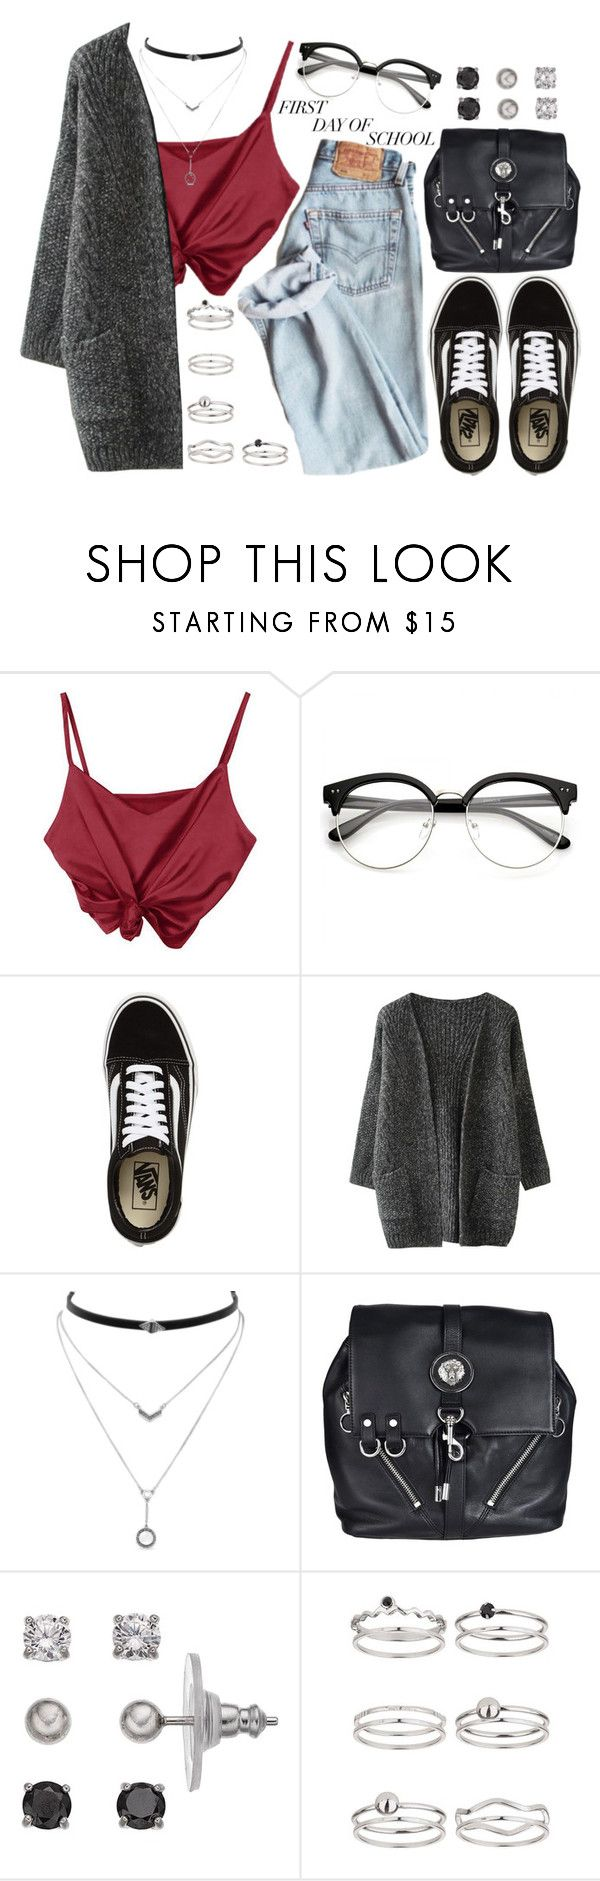 """1366."" by asoul4 ❤ liked on Polyvore featuring Vans, Jessica Simpson, Versus, Primrose, Miss Selfridge and BackToSchool"